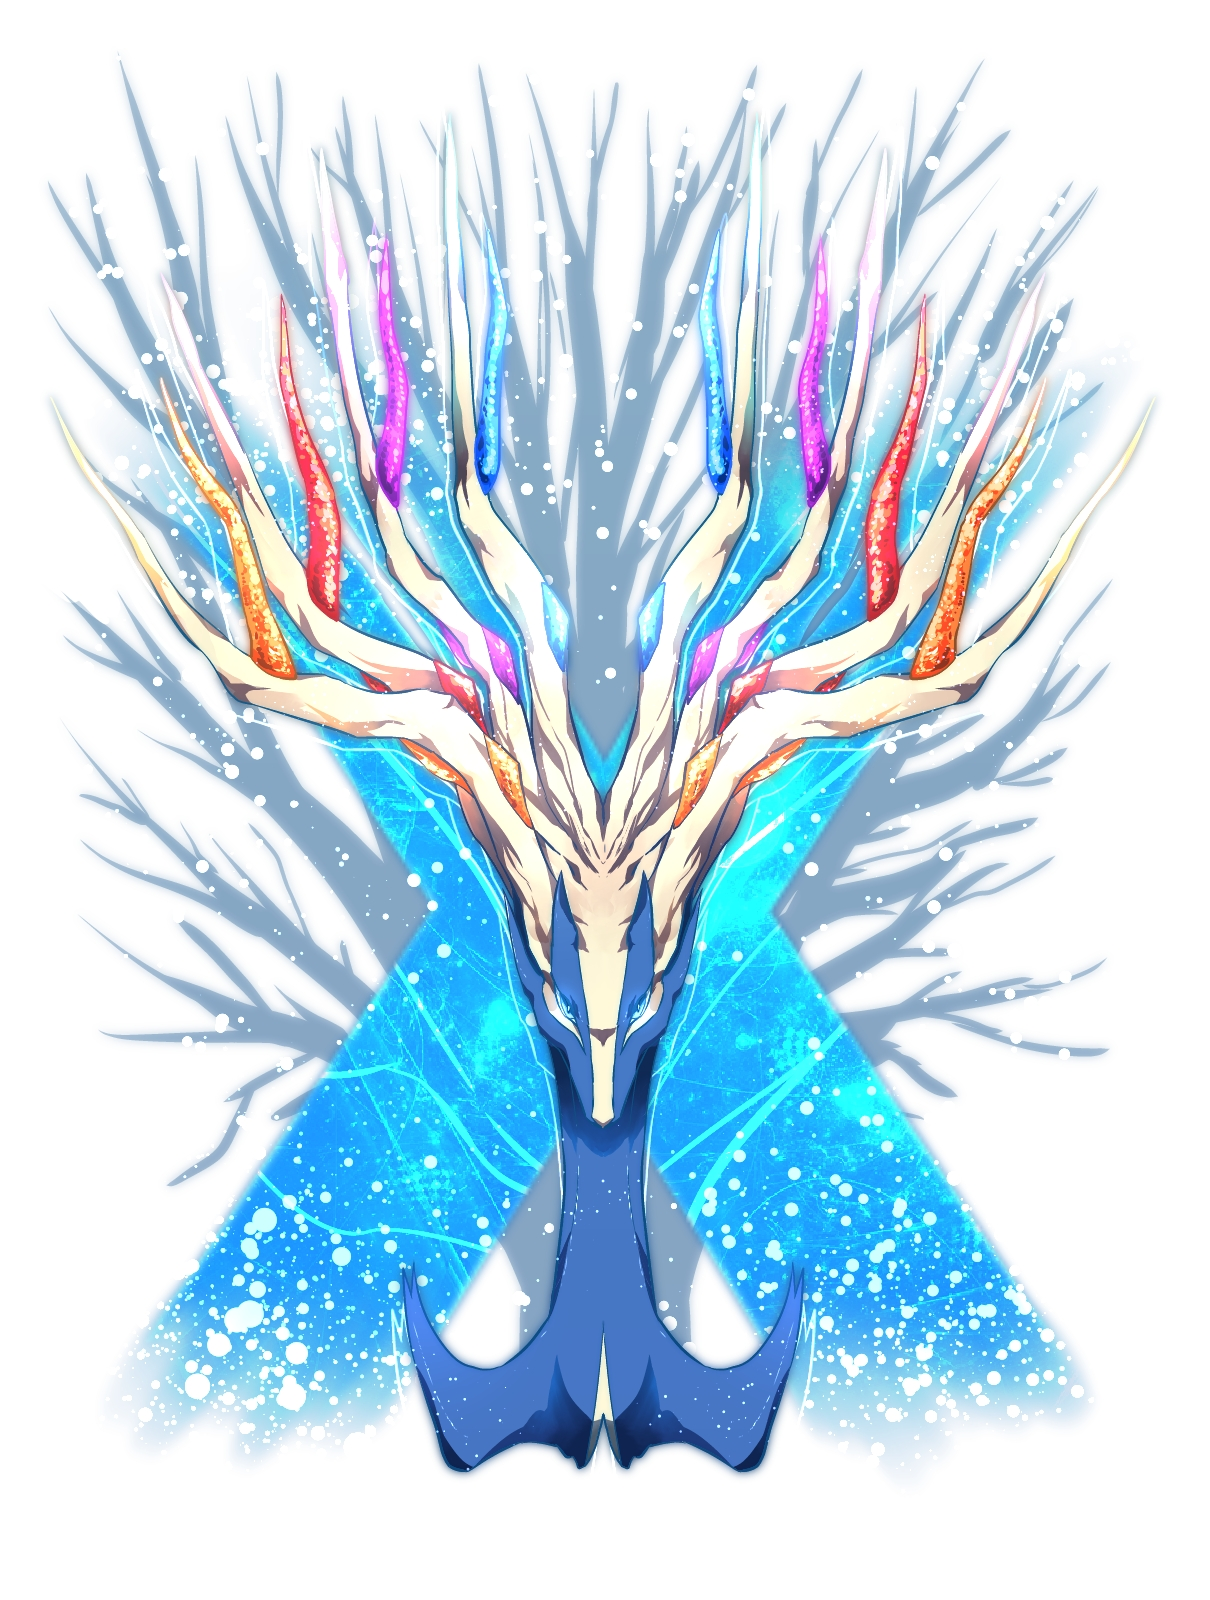 Xerneas/#1600818 - Zerochan Glowing Eyes Anime